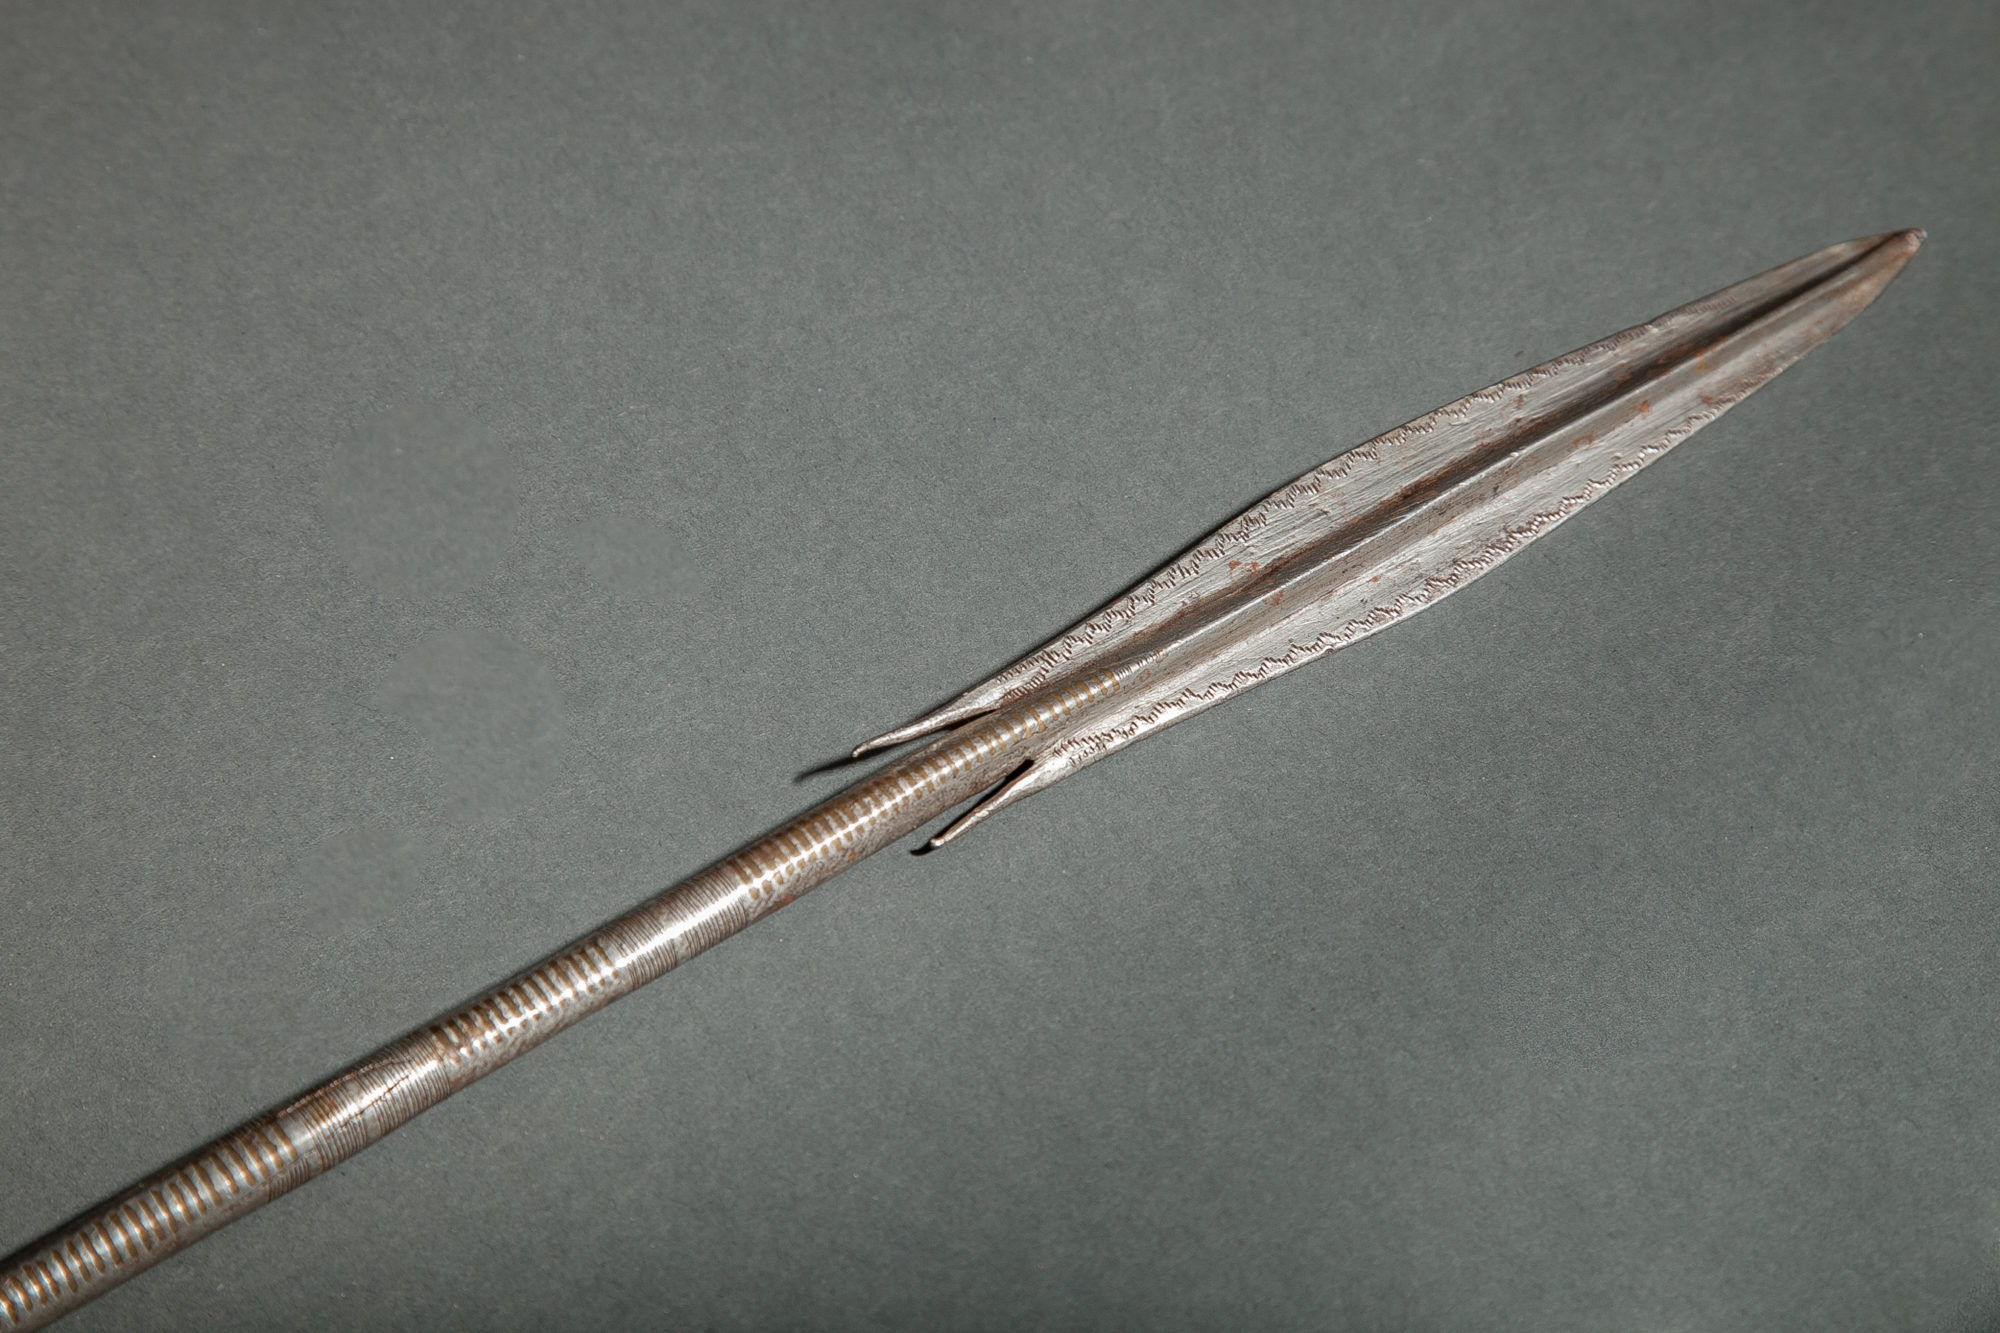 African Masai Spear with Leather Handle.